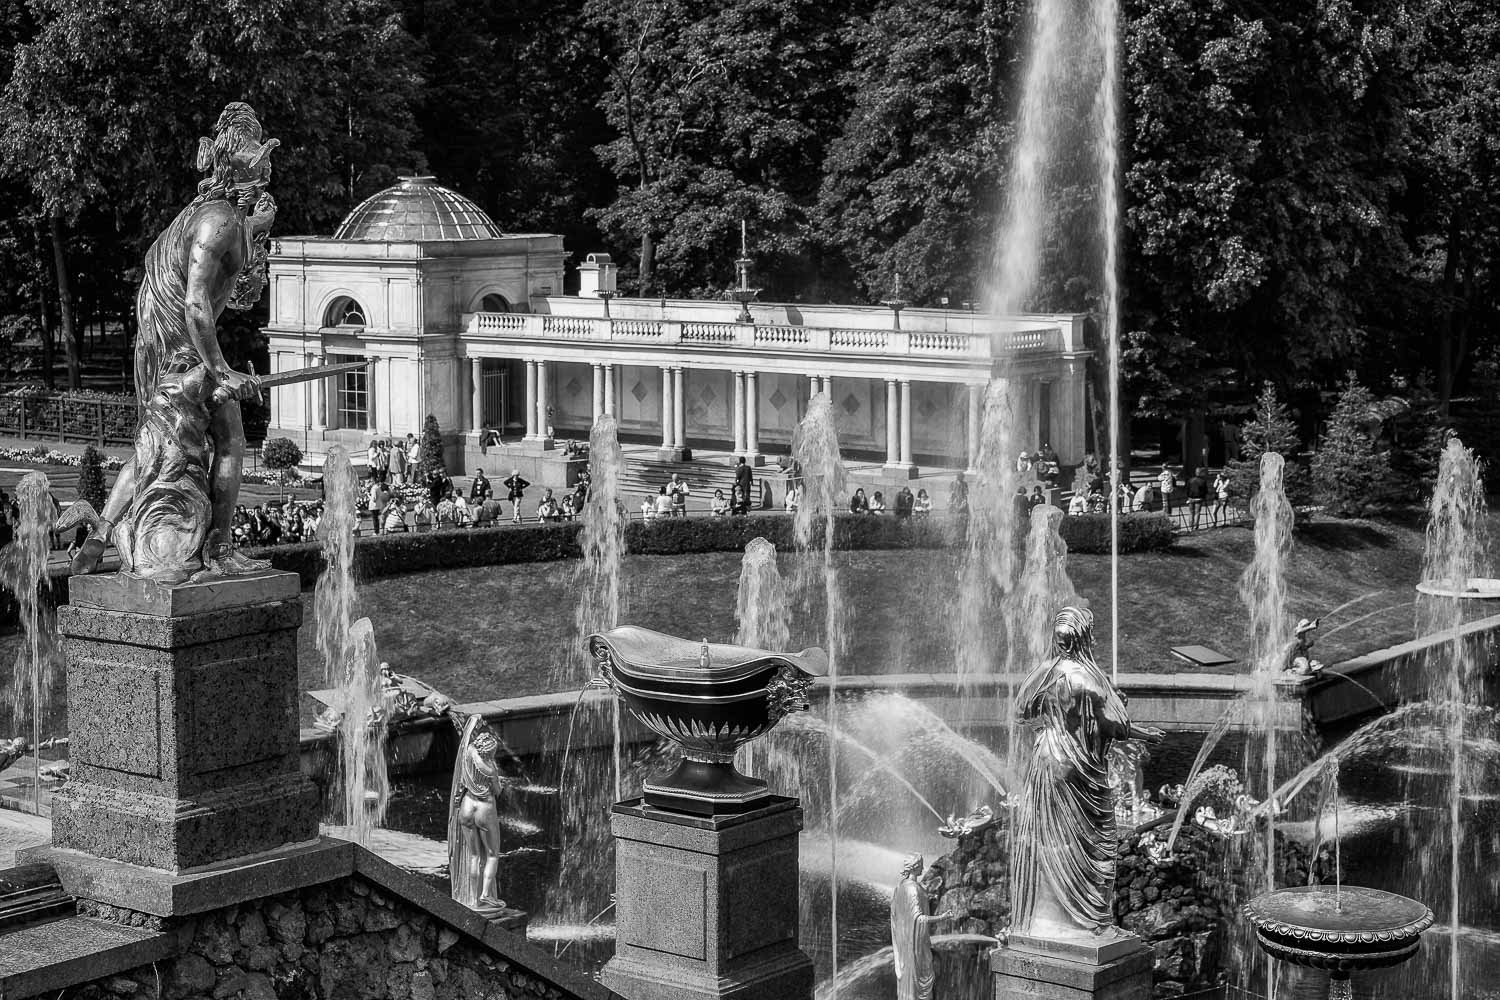 A black and white image showing a rear view of the  Grand Cascade  at  Peterhof Palace  near  St. Petersburg, Russia .